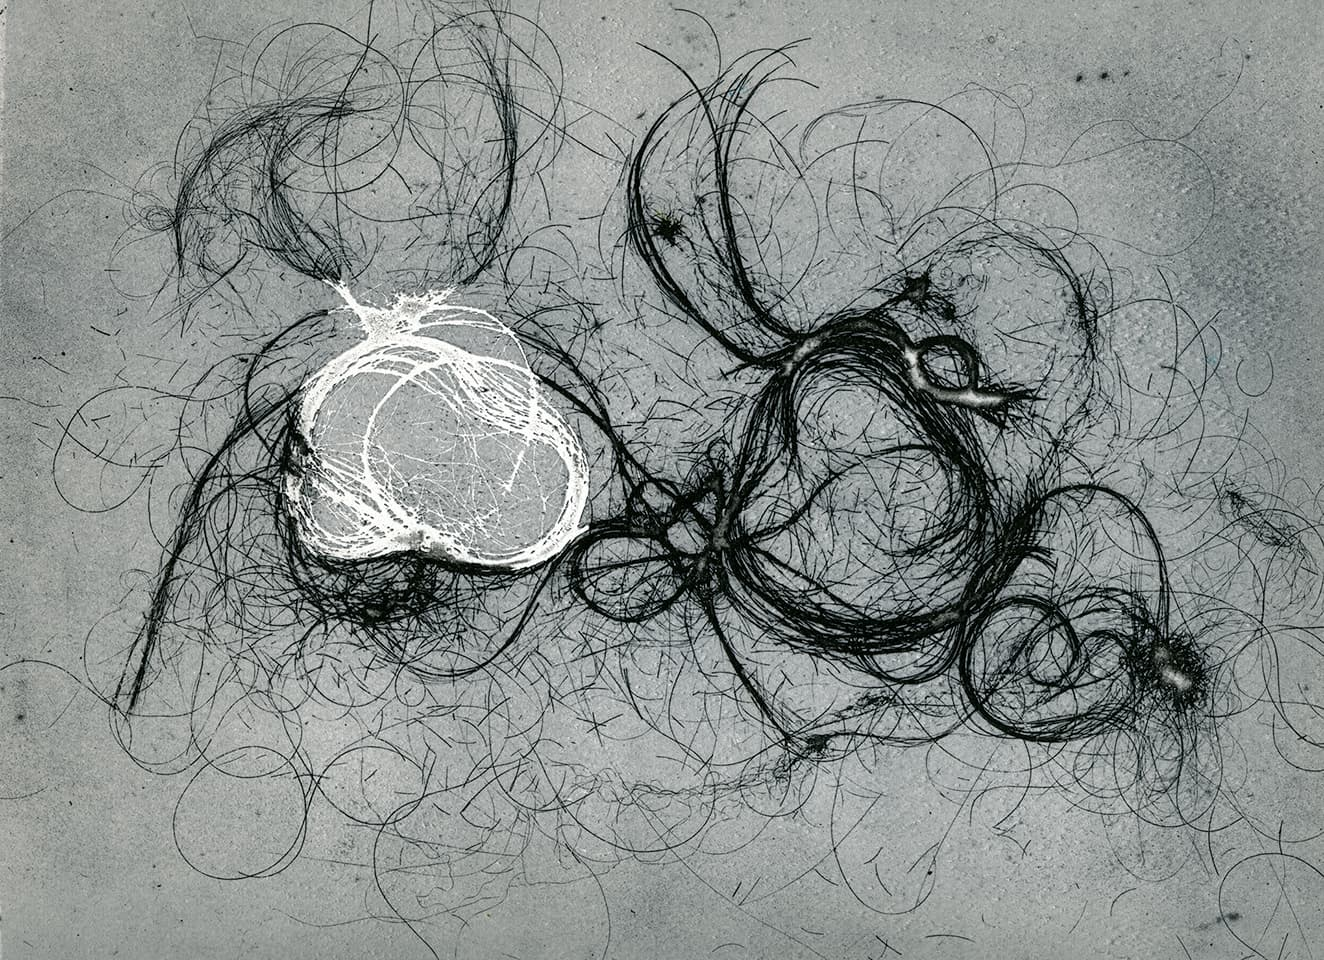 <strong>The Entangled Self 8</strong>, Susan Aldworth, etching, 25 x 31 cms, 2014.